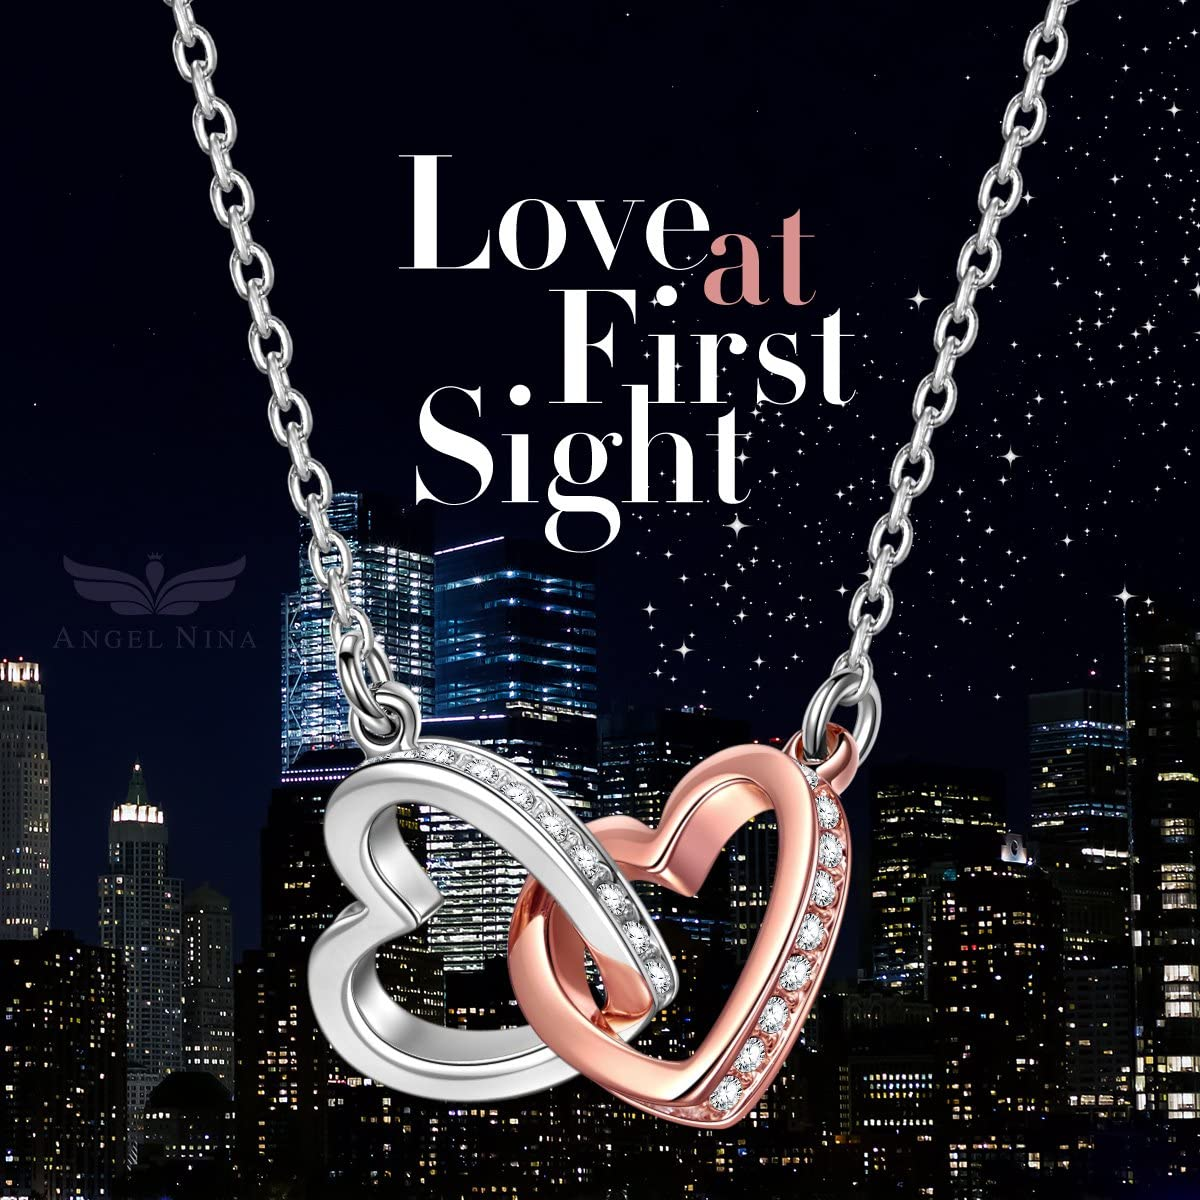 ANGEL NINA Valentine Gifts Necklaces for Women 925 Sterling Silver Heart Necklace Love at First Sight Valentines Anniversary Birthday Gifts for Women Wife Girlfriend with Elegant Jewelry Box